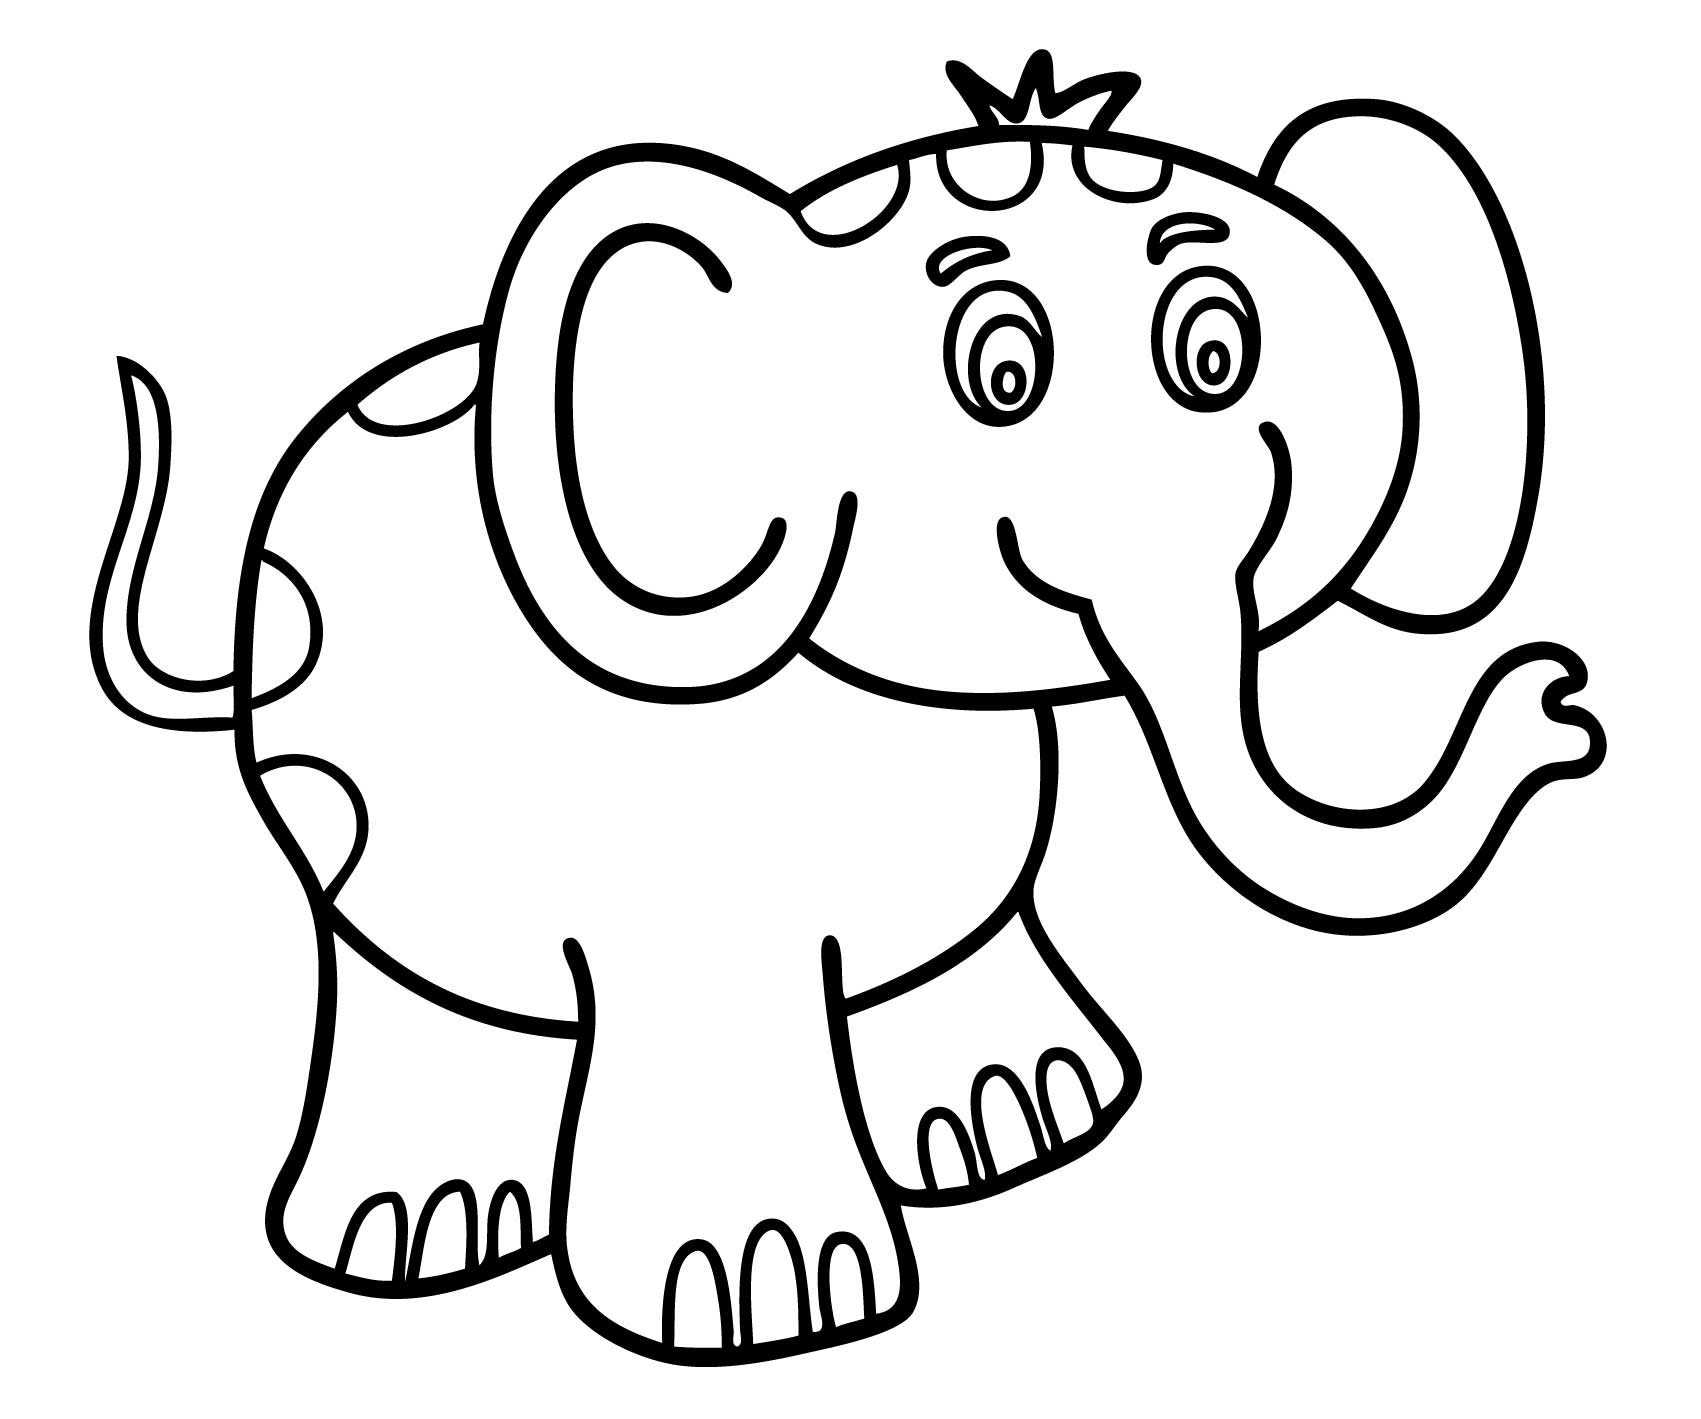 kids easy coloring book easy coloring pages best coloring pages for kids easy book coloring kids